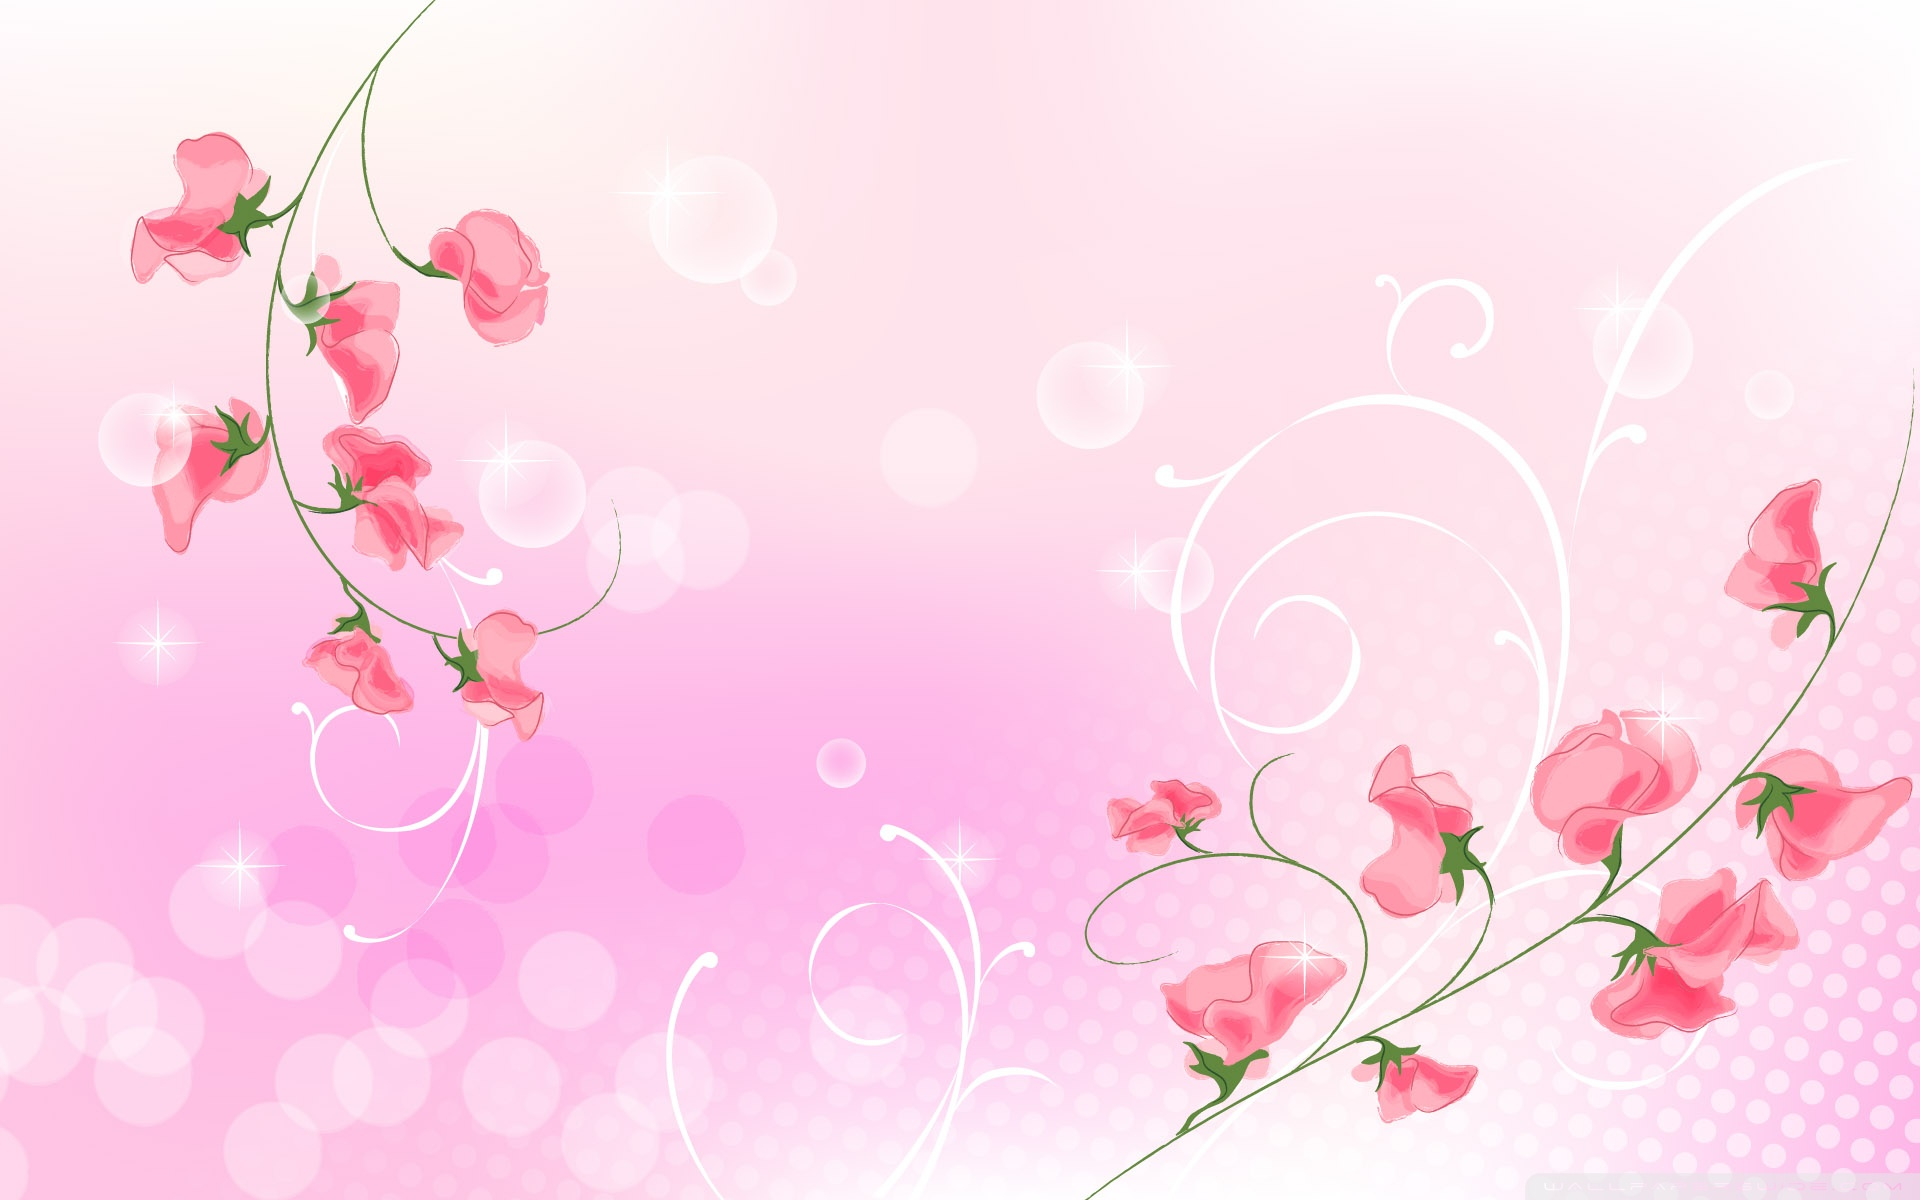 Pink flowers wallpaper 50 wallpapers adorable wallpapers pink flowers wallpaper 50 wallpapers dhlflorist Choice Image